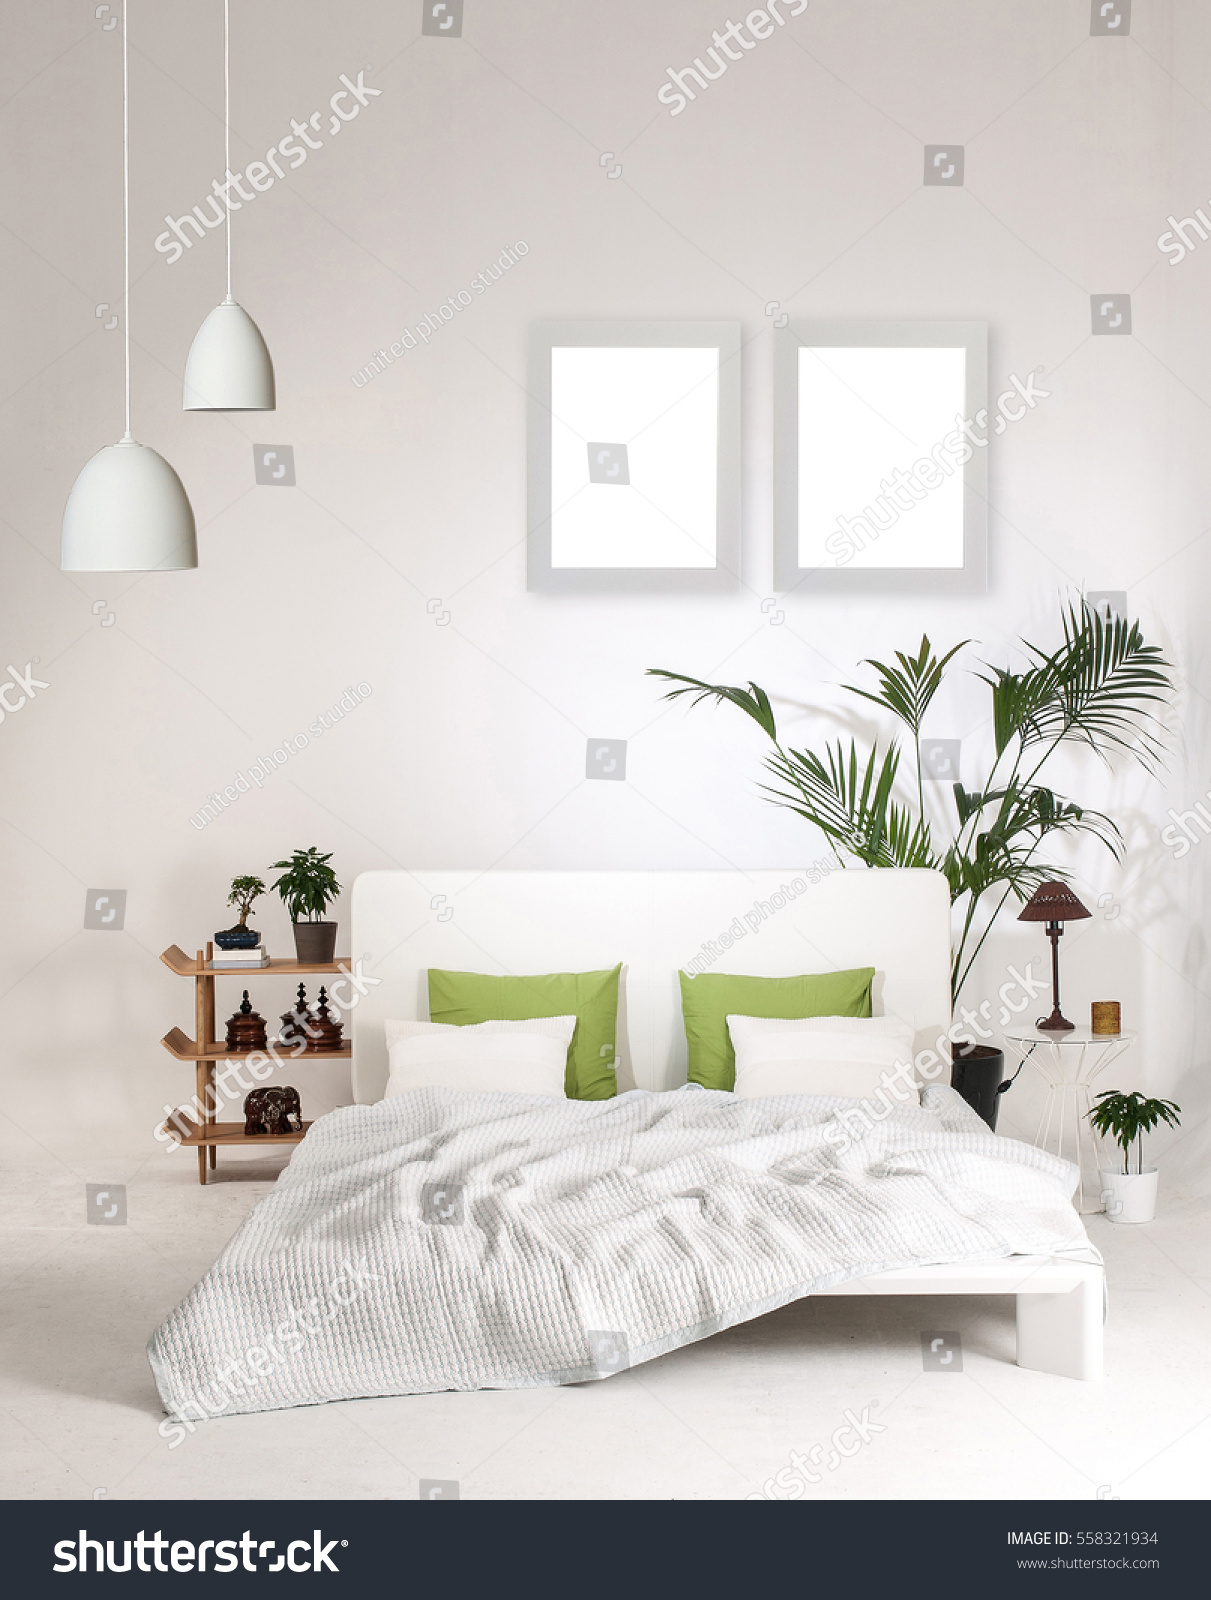 Modern White Wall Bedroom Bed Green Stock Photo (Edit Now) 558321934 ...